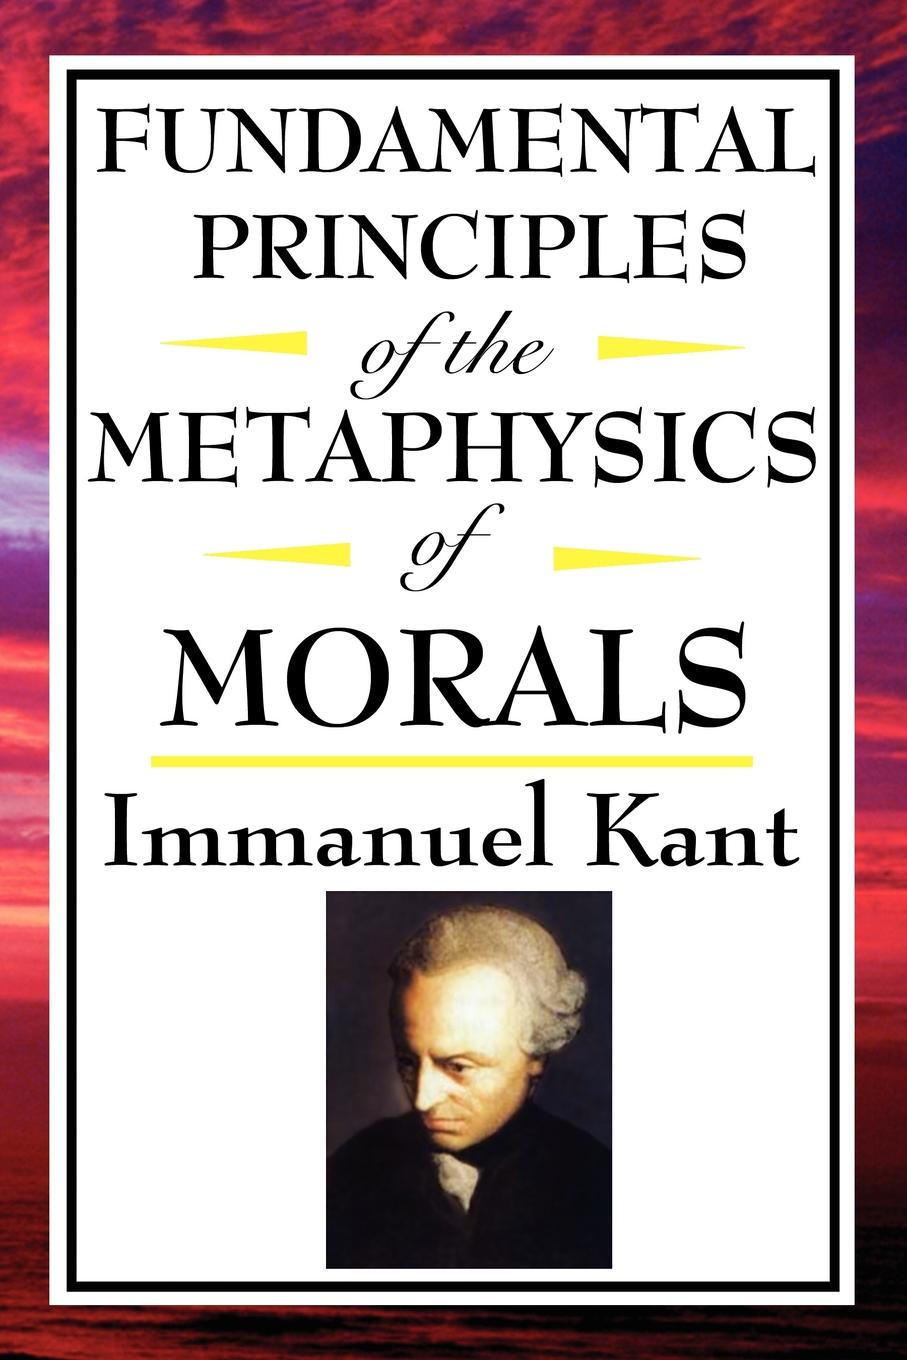 Fundamental Principles of the Metaphysics of Morals By: Immanuel Kant